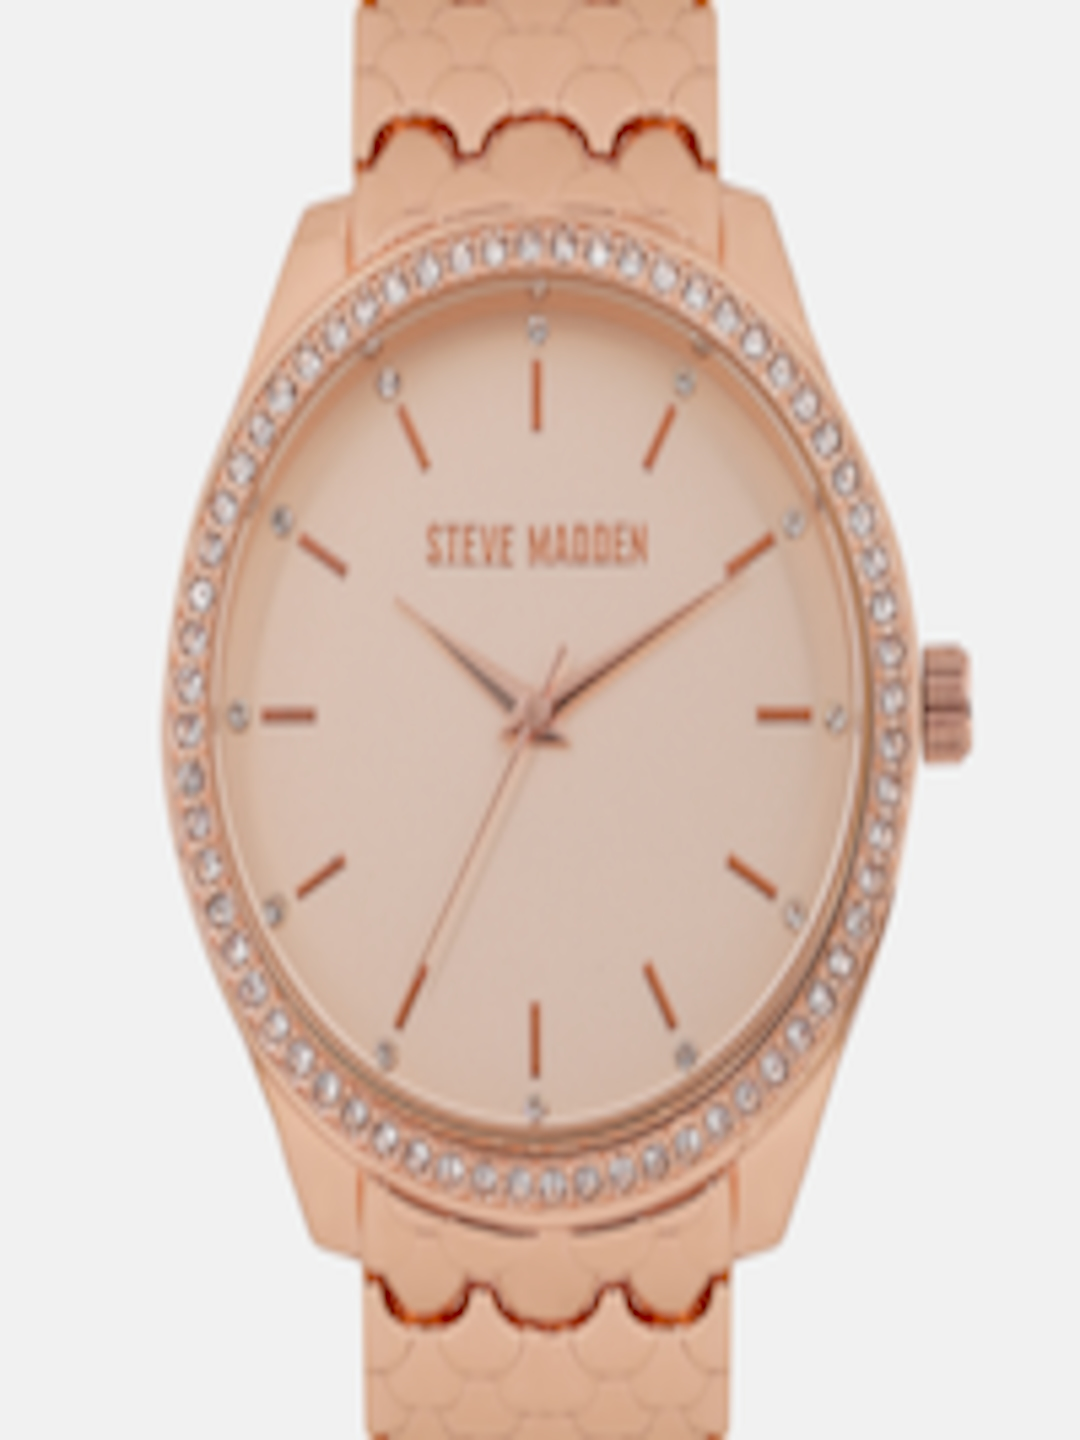 c82a234e3ea Buy Steve Madden Women Rose Gold Embellished Analogue Watch SMW170Q - -  Accessories for Women